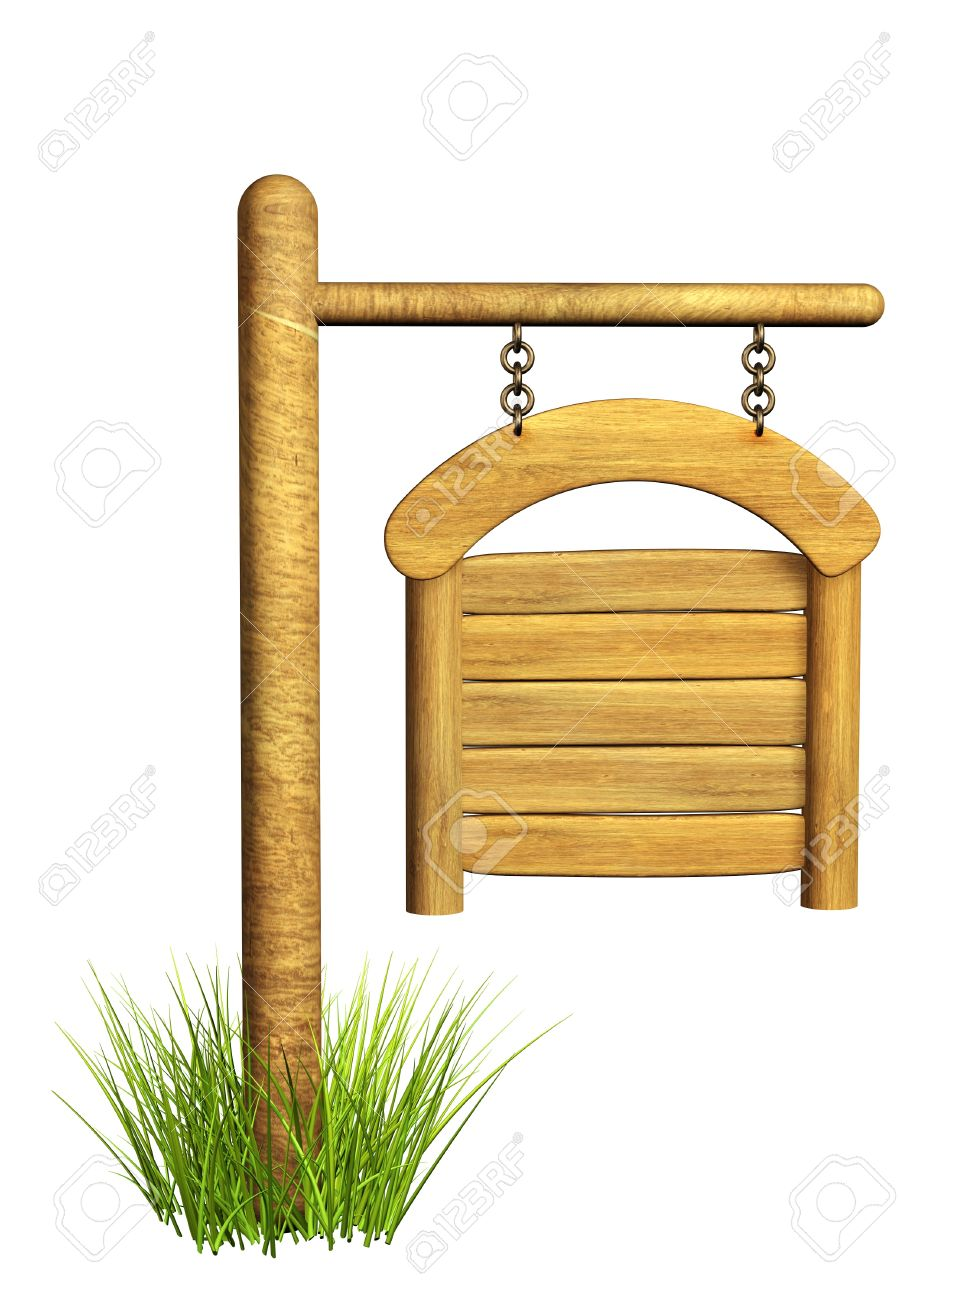 Wooden signboard. Object isolated over white Stock Photo - 8948528